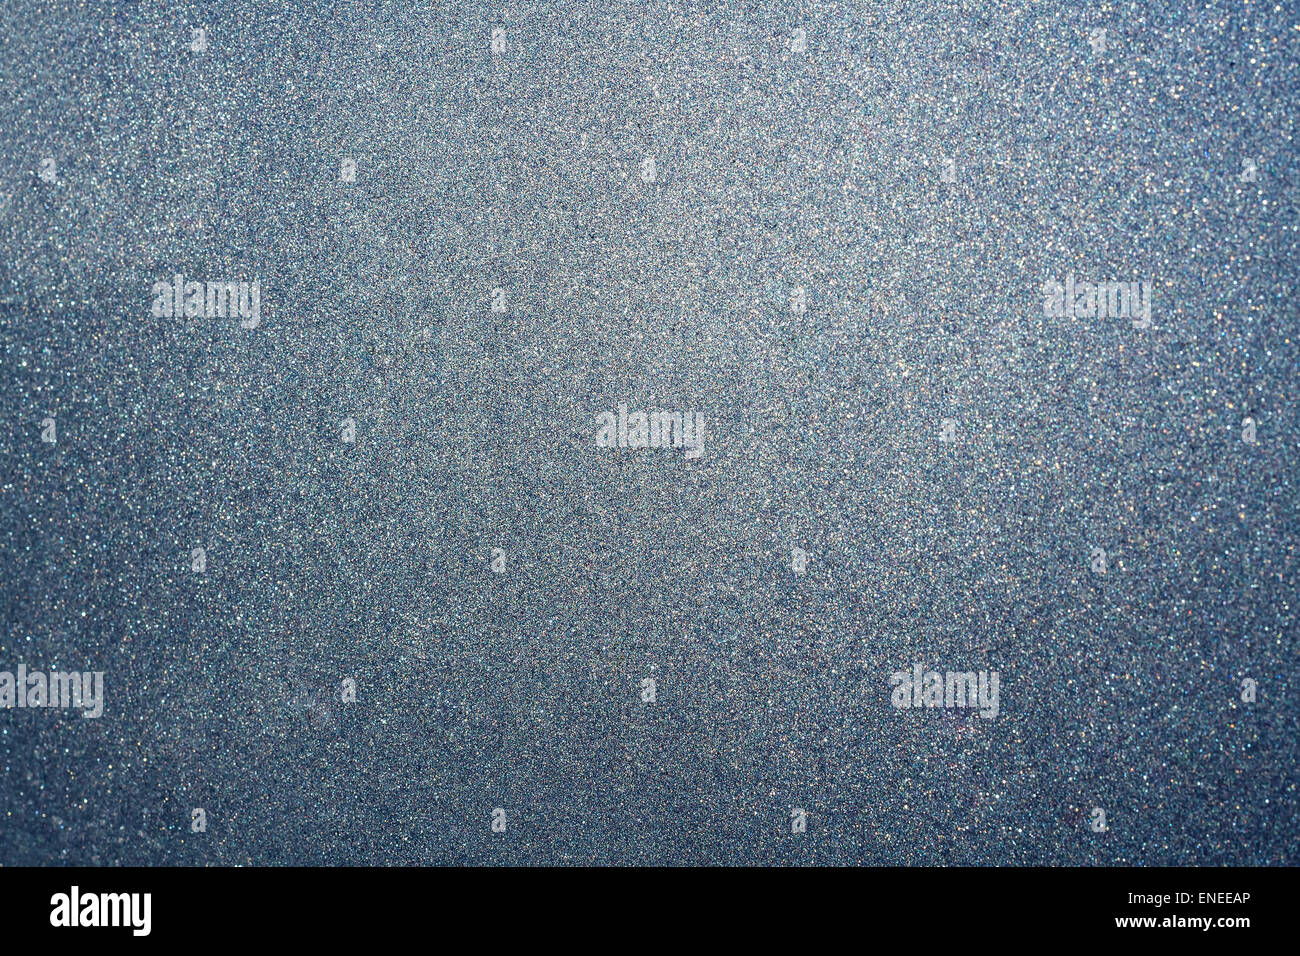 Abstract glittering silver and blue dust or sand background with blur edges of image - Stock Image